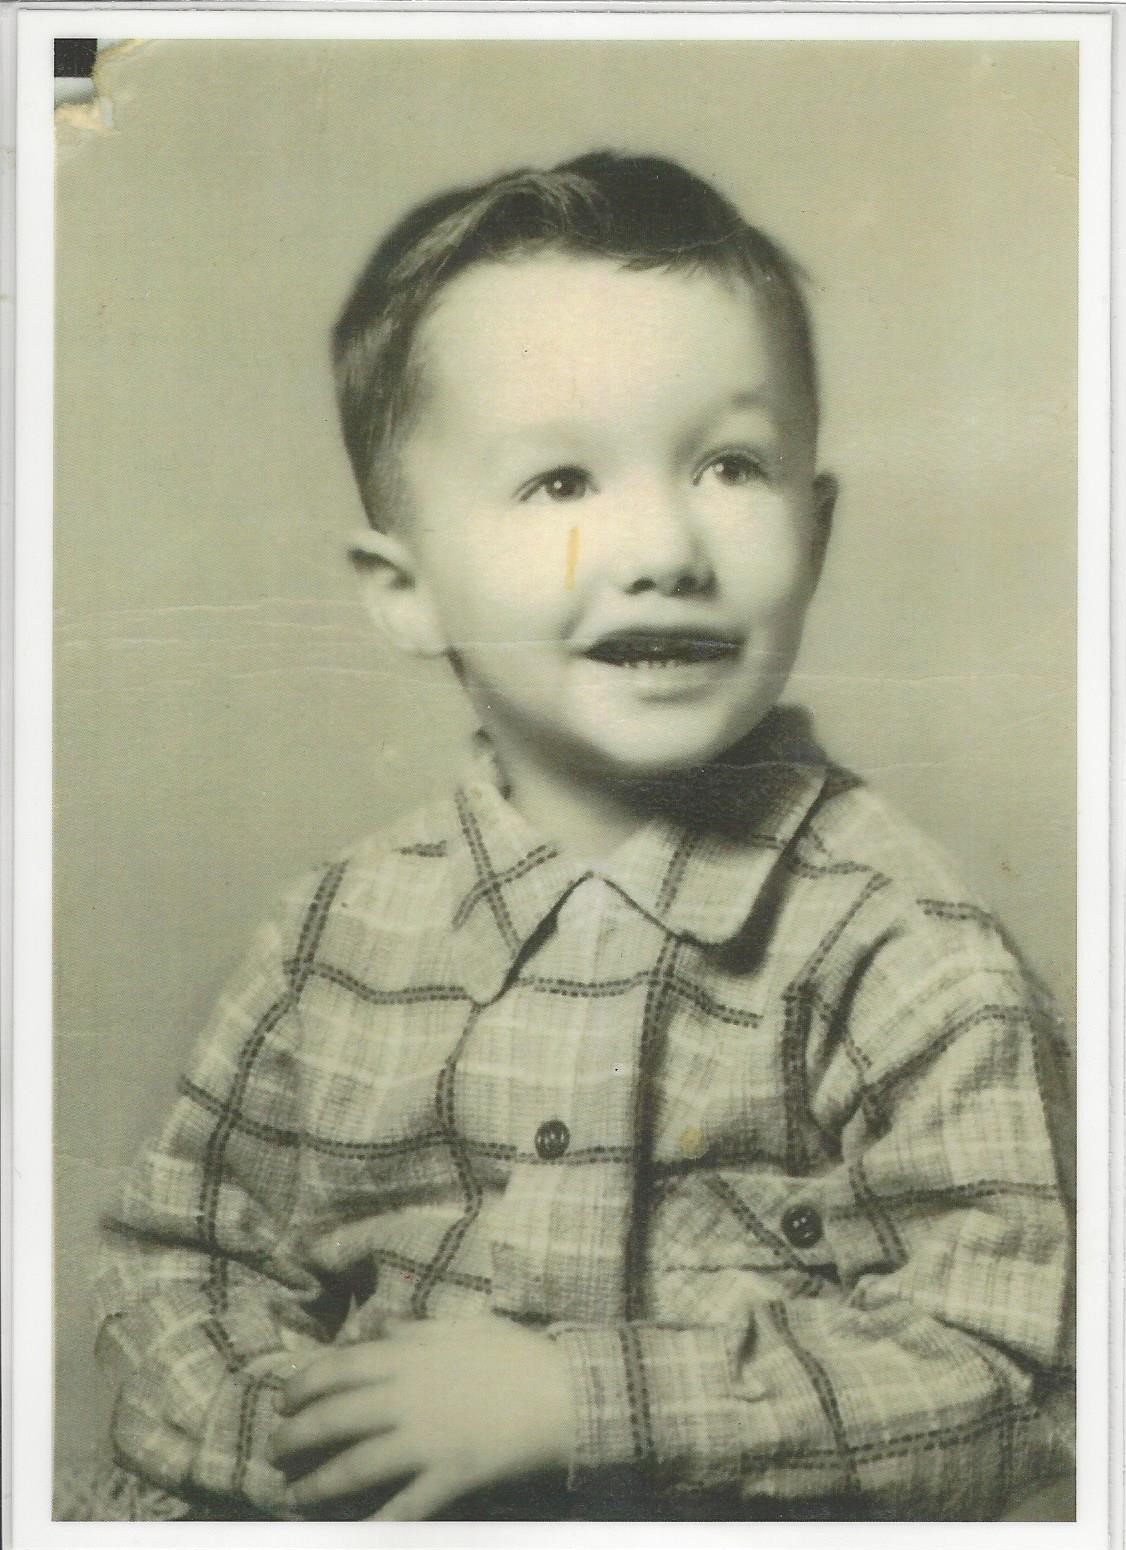 Denis as a child